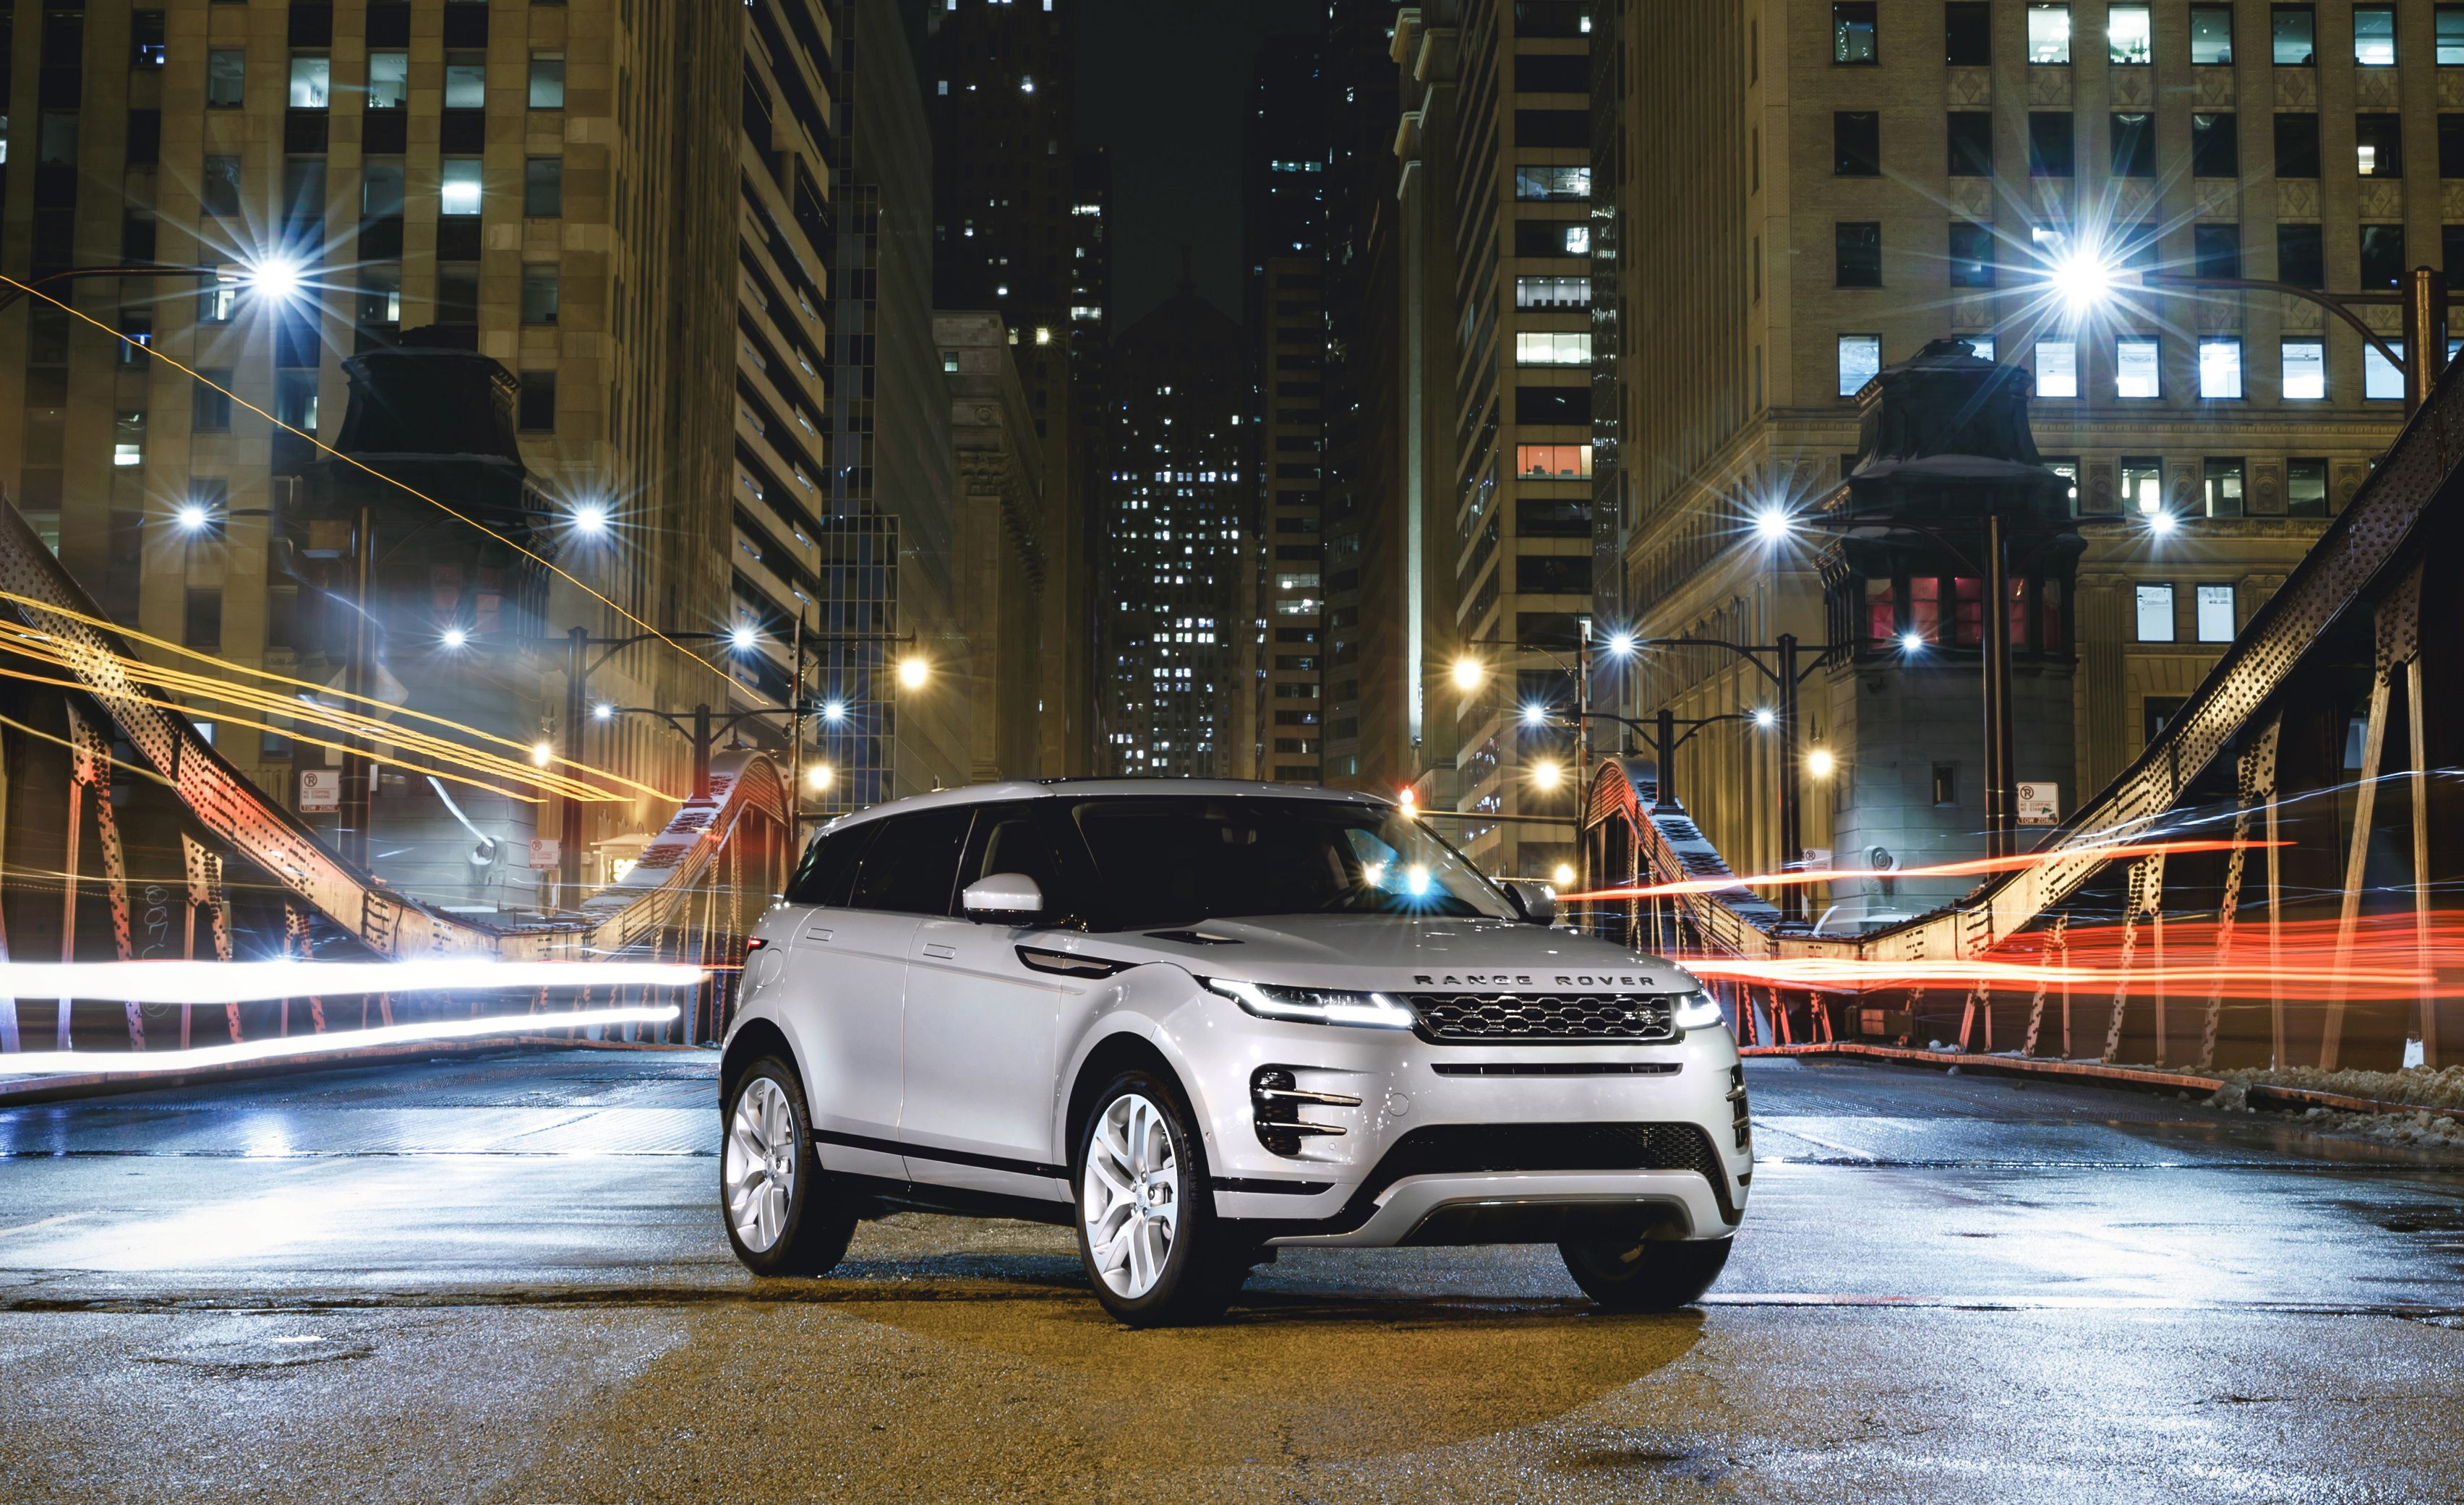 2020 Range Rover Evoque Options And Price >> 2020 Range Rover Evoque Pricing And On Sale Date